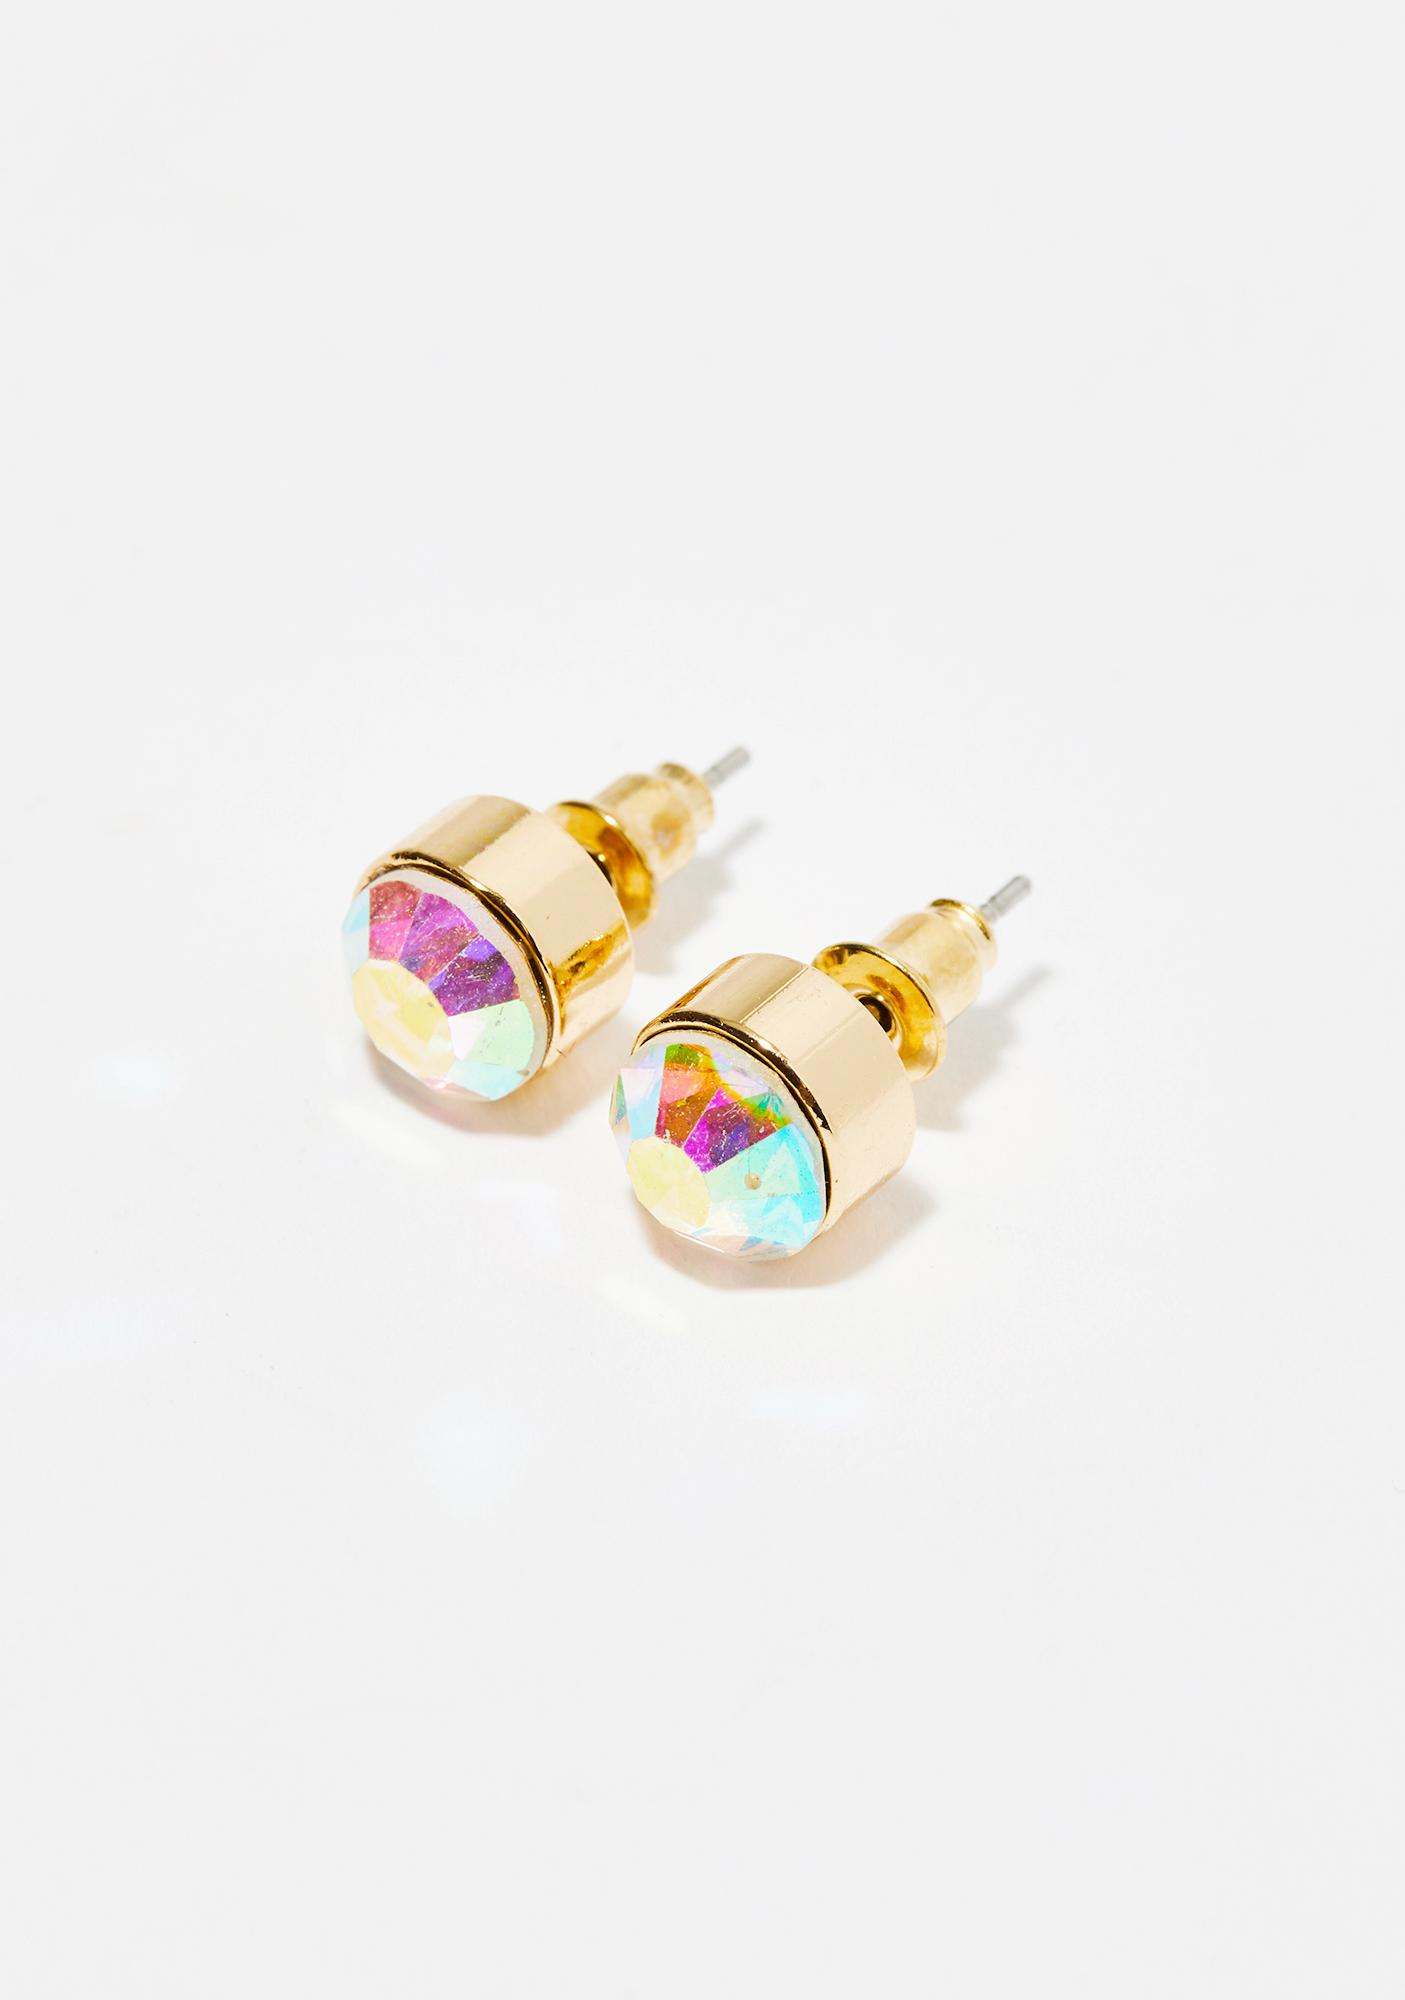 Stellar S Iridescent Earrings